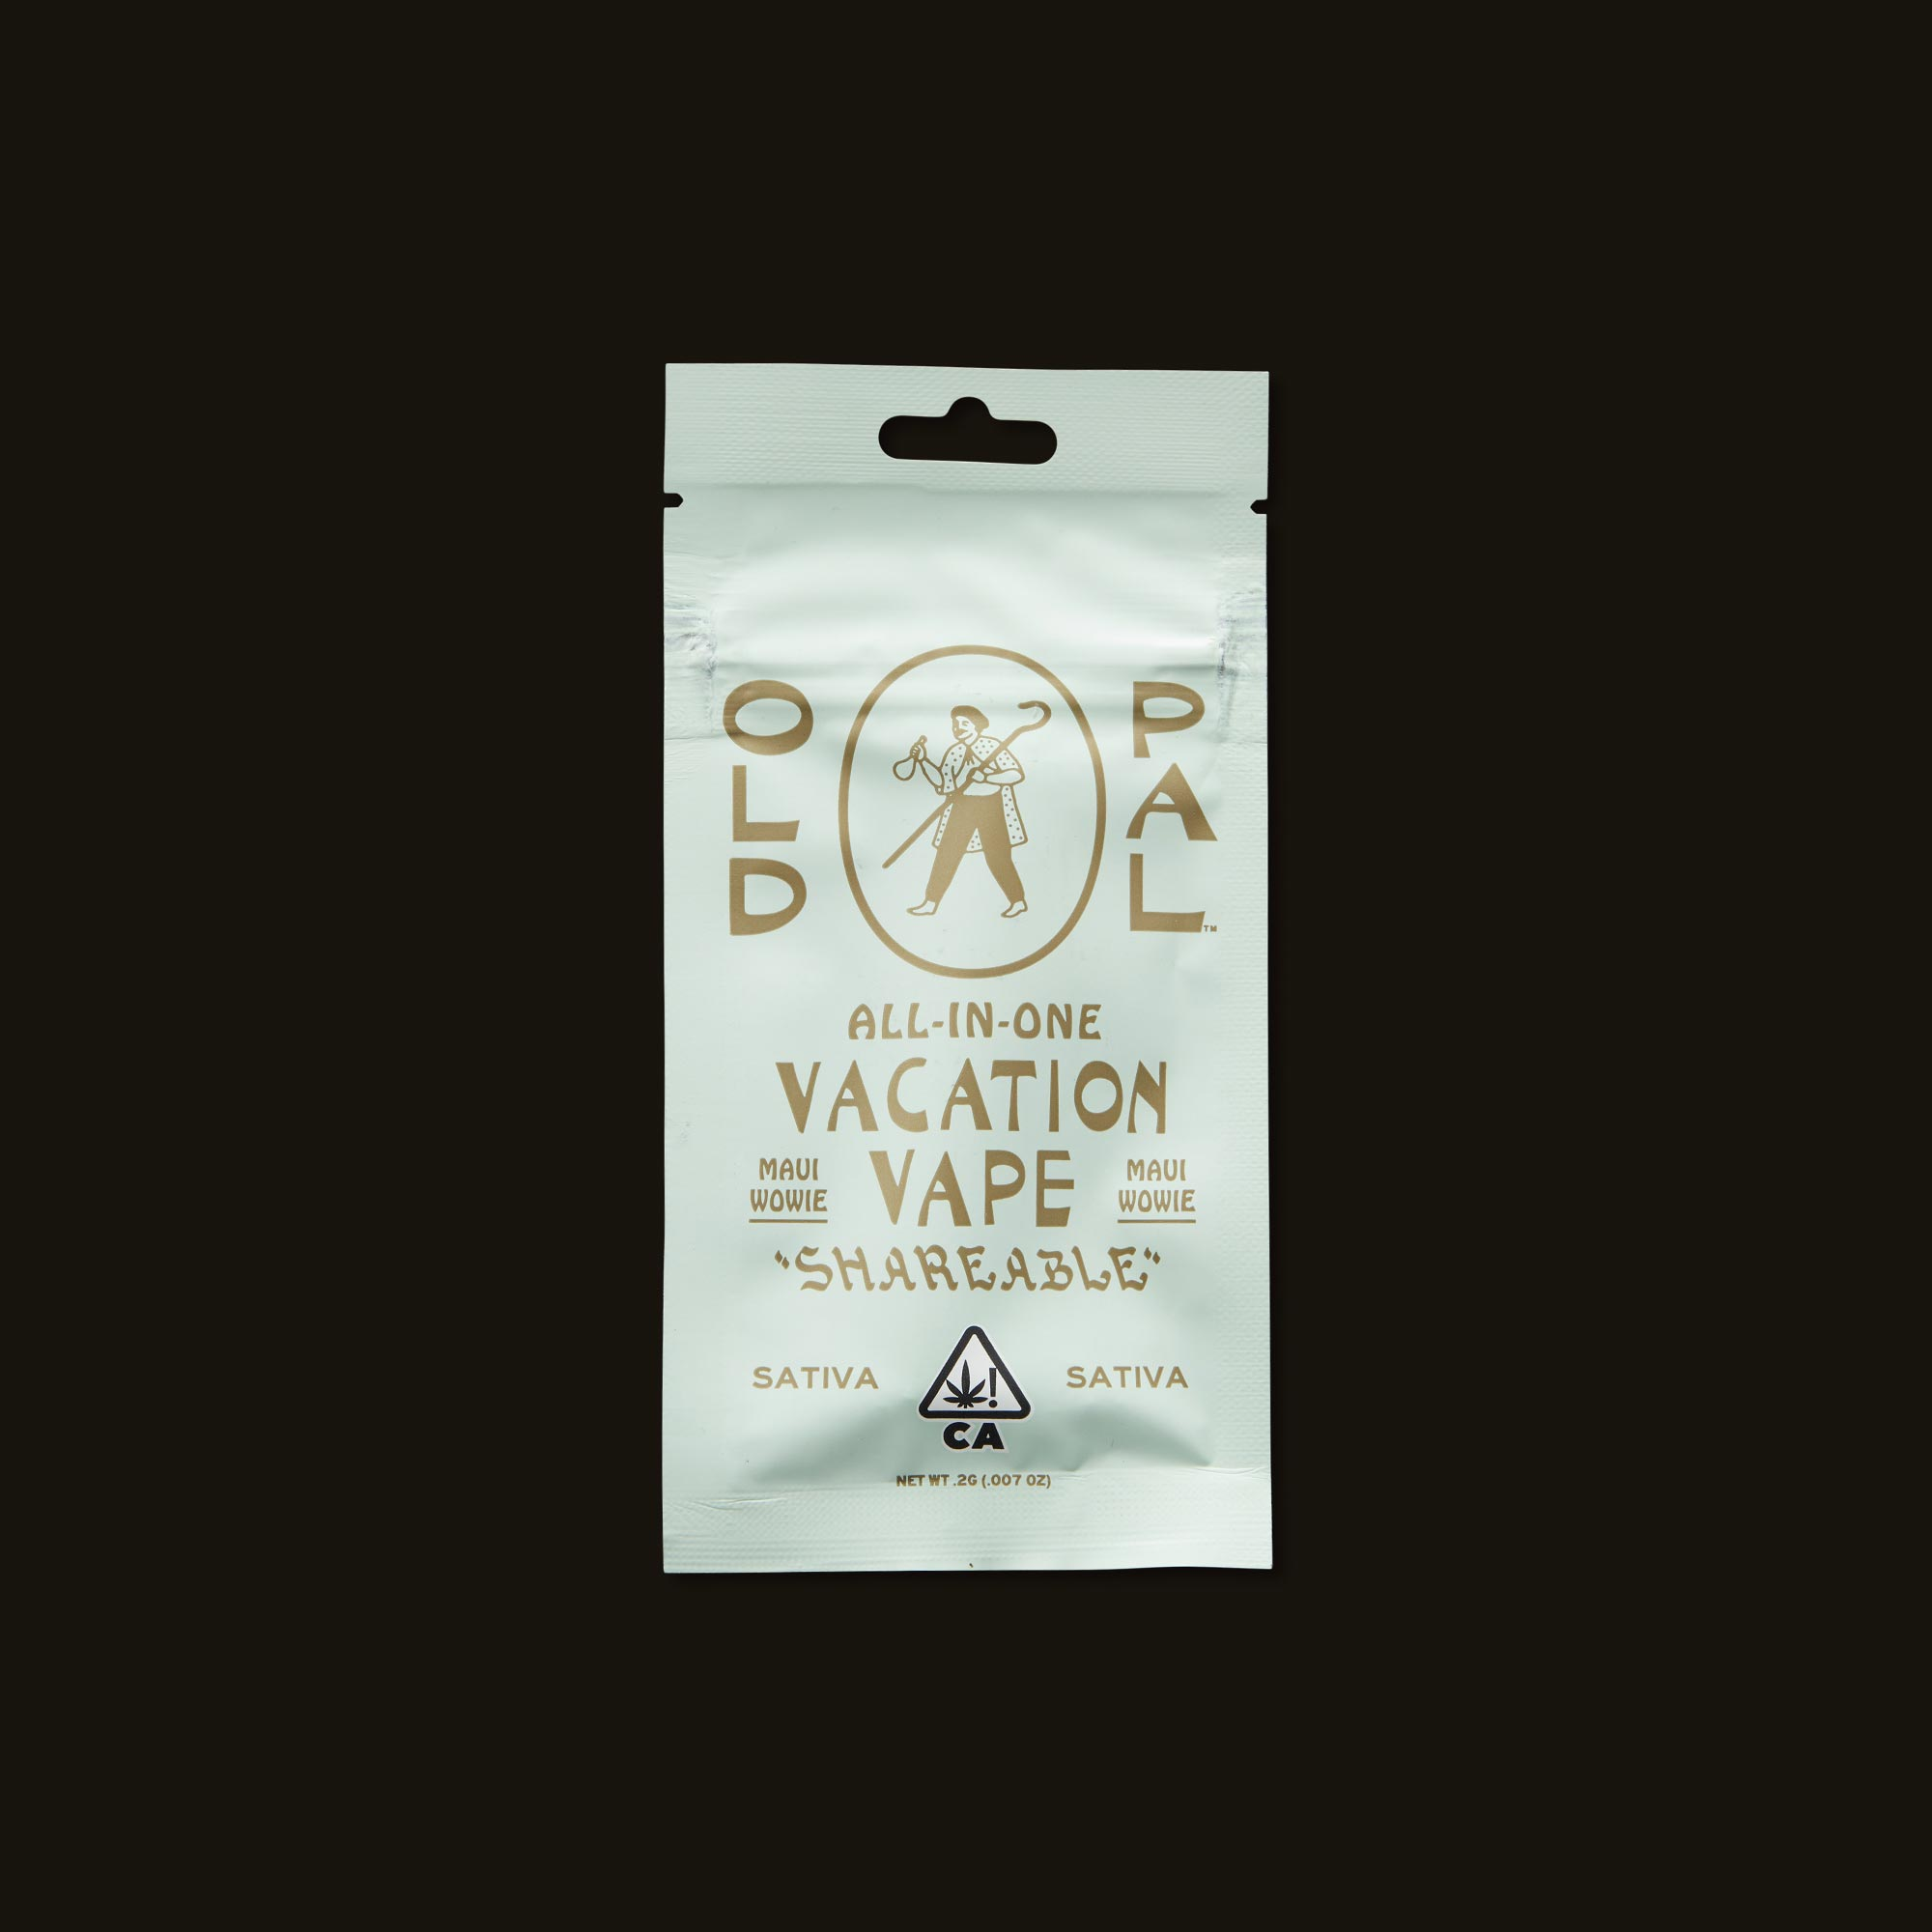 OLD PAL Maui Wowie Vacation Vape Front Packaging